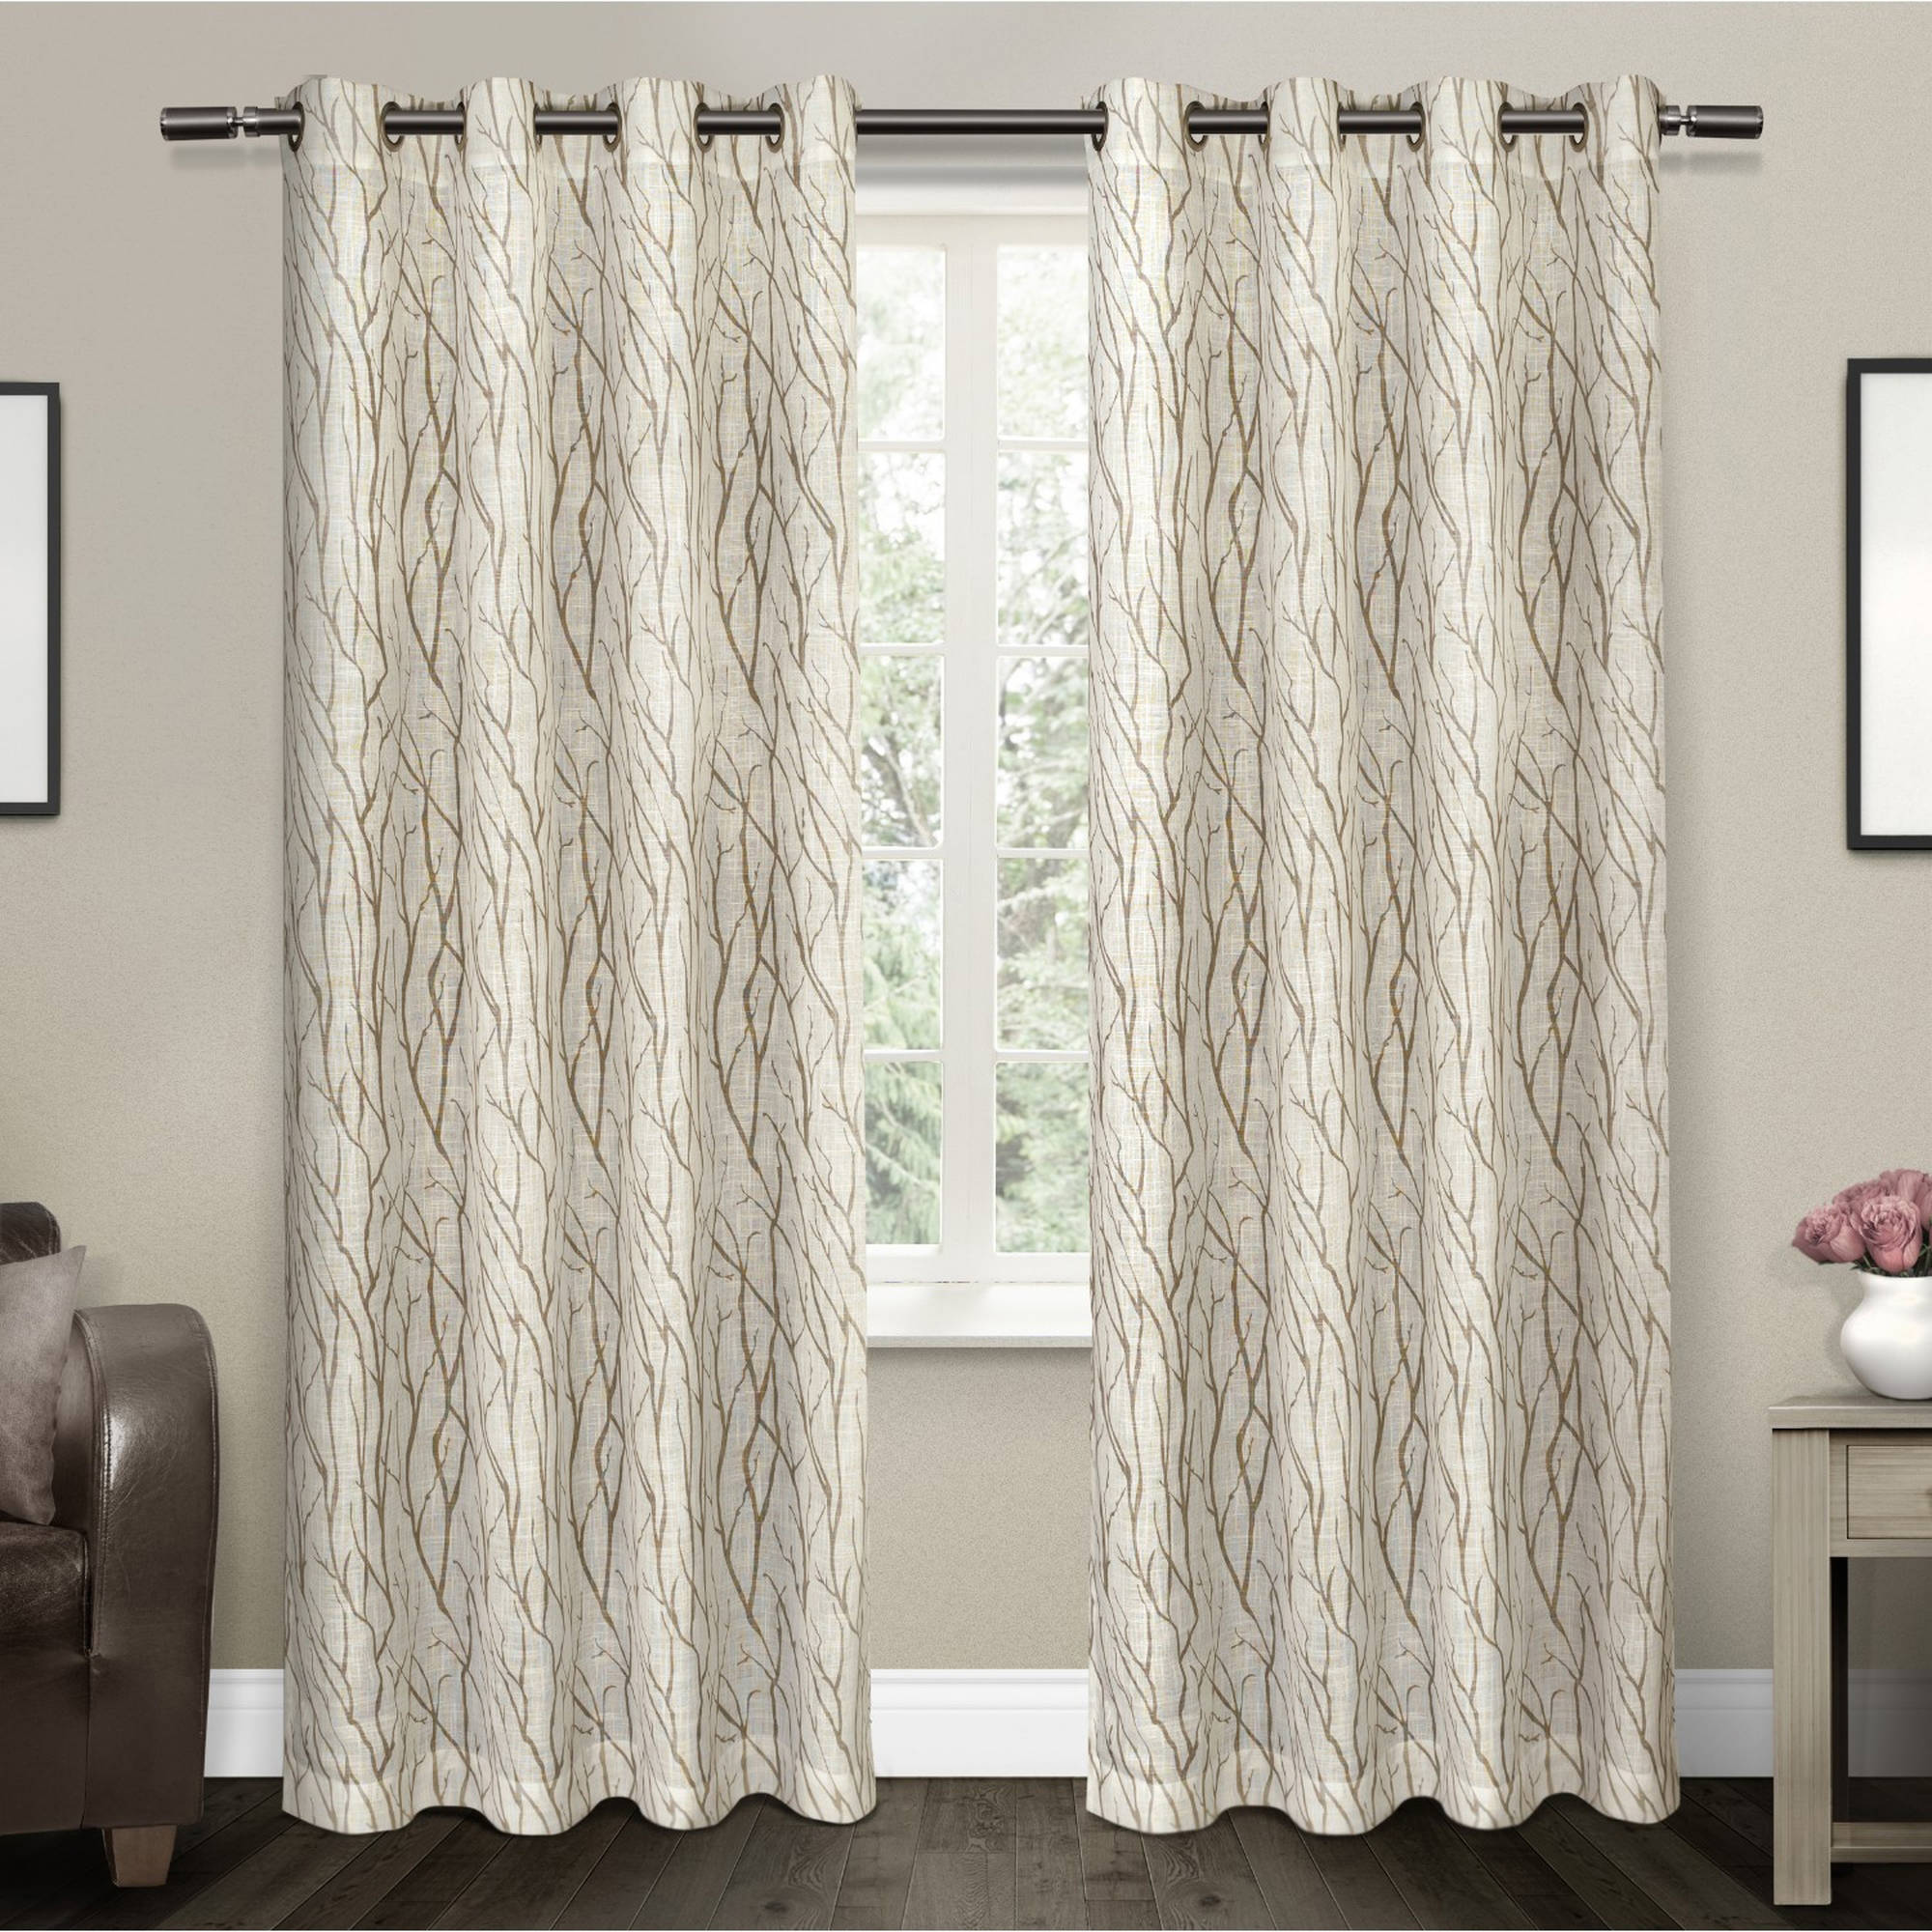 "Oakdale Textured Linen Motif Grommet Top Window Curtain Panel Pair, Taupe, 54"" X... by Exclusive Home"